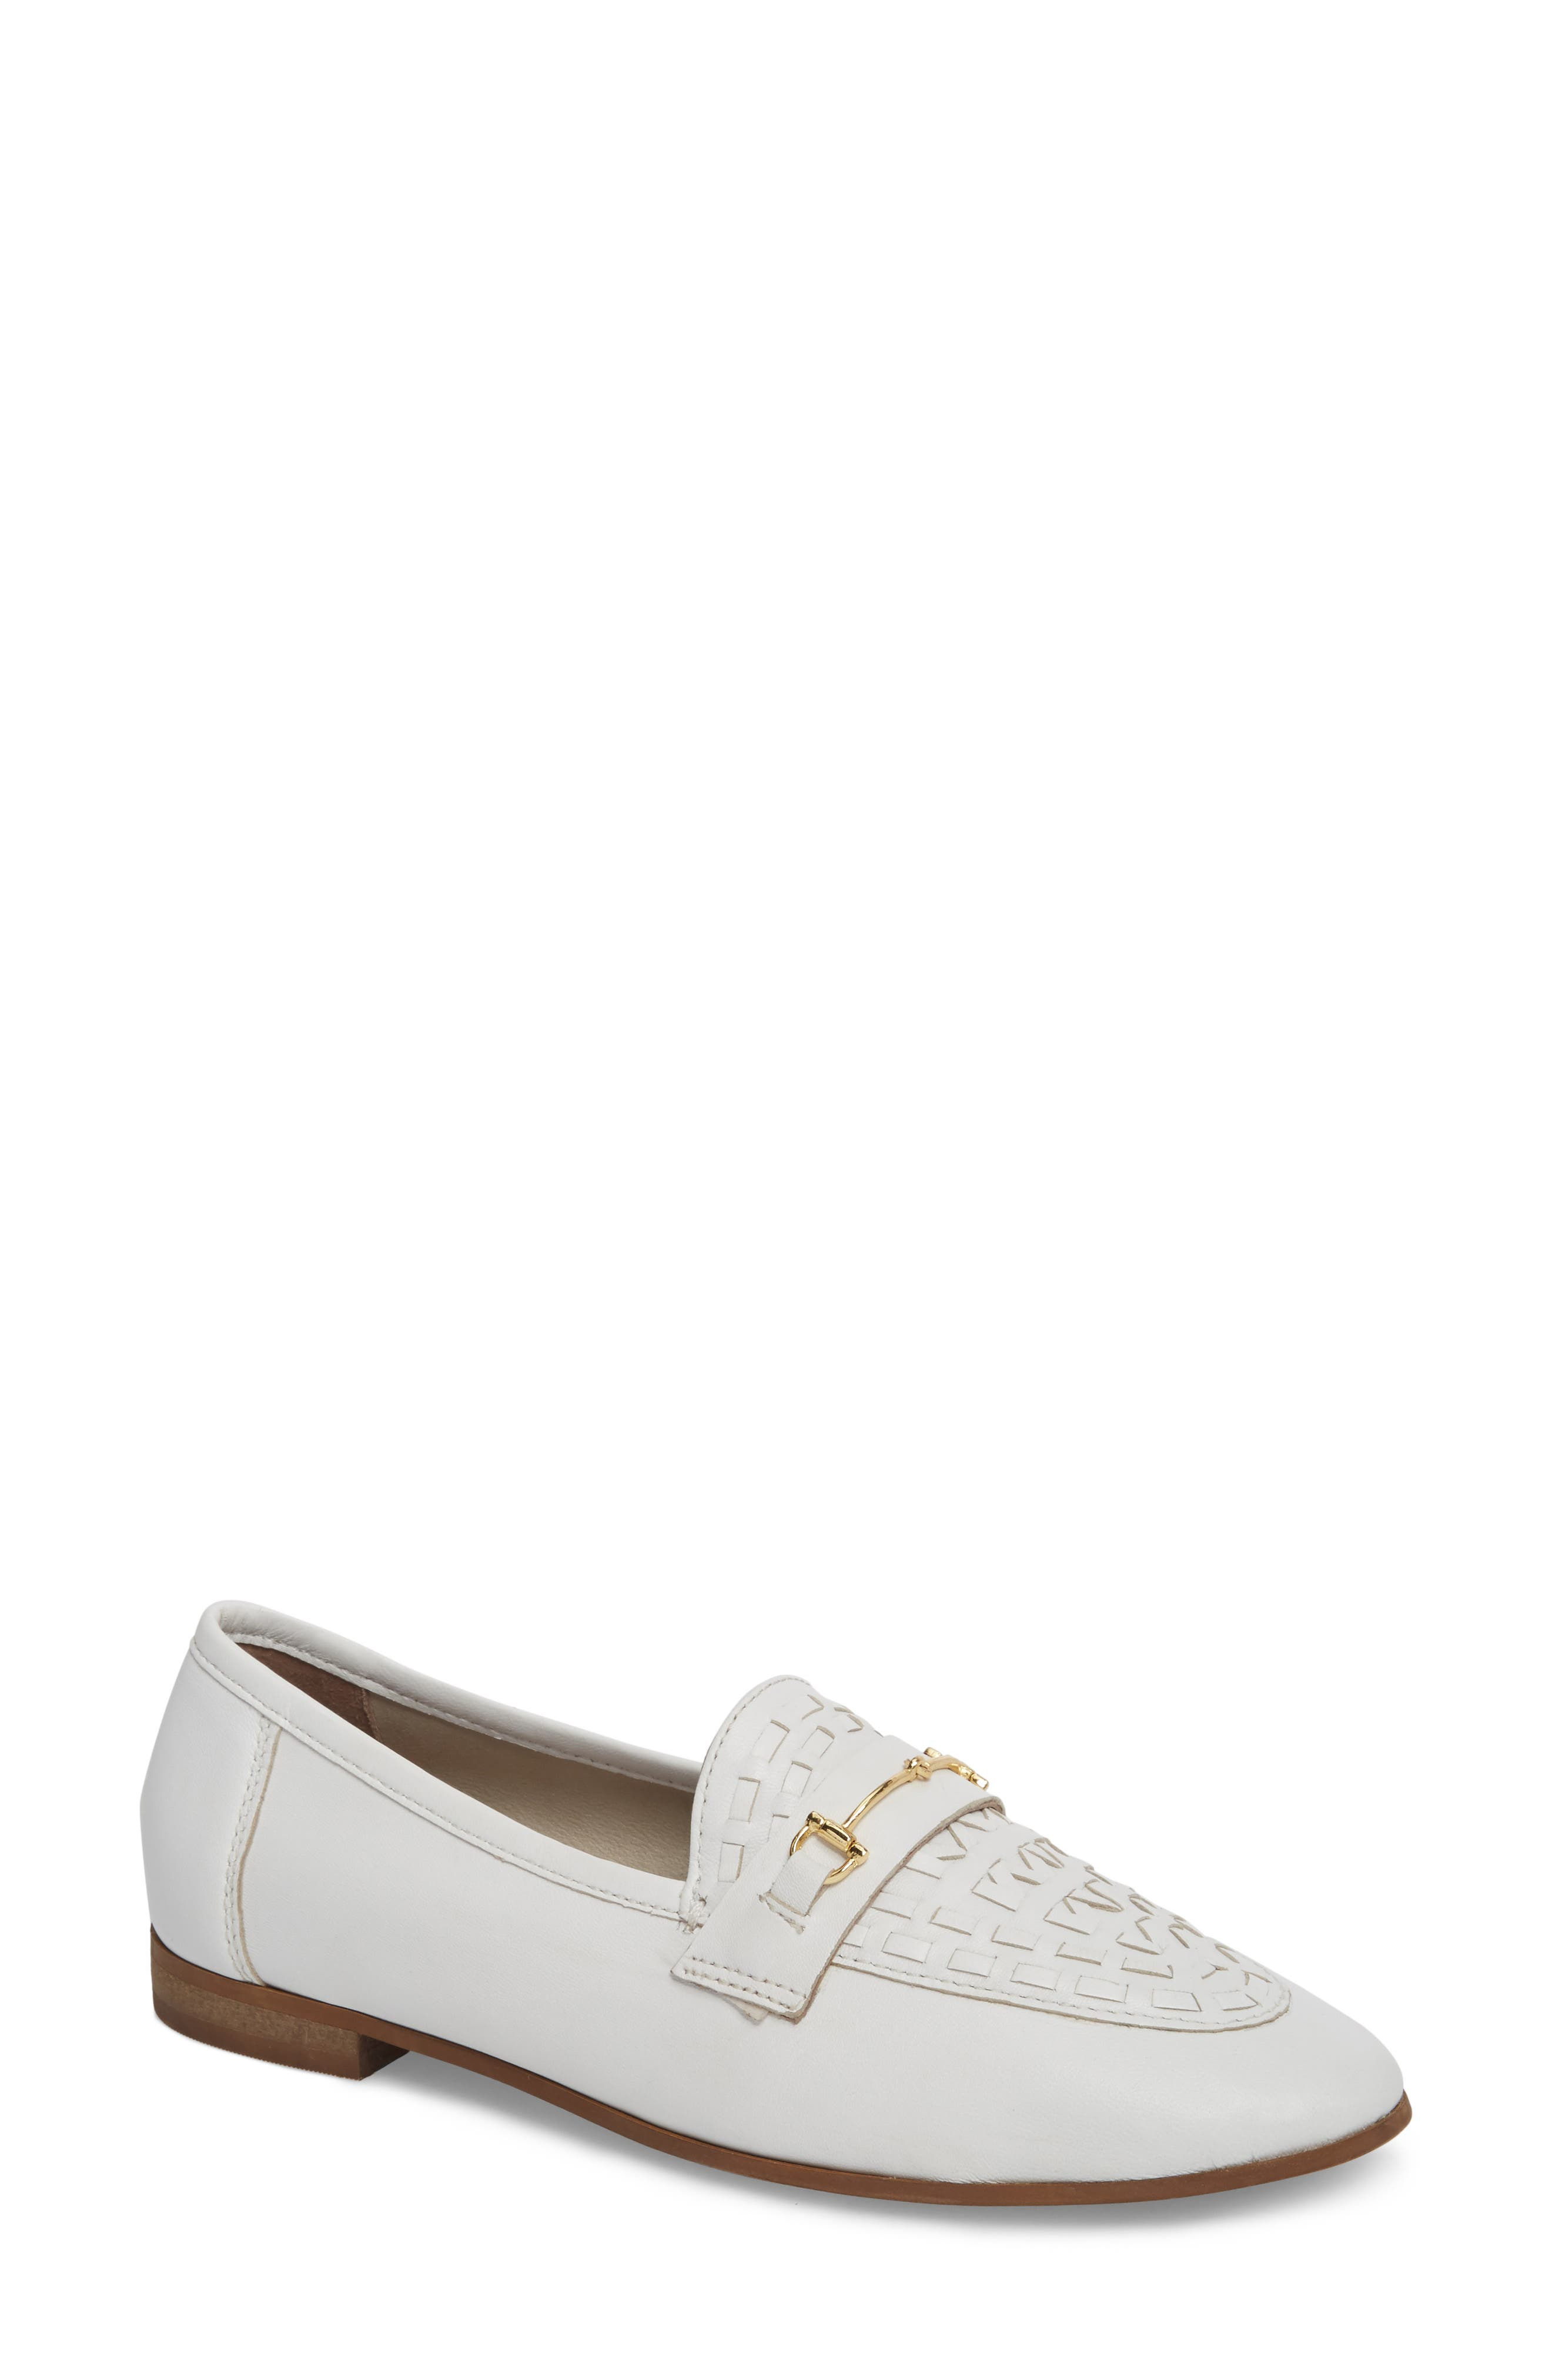 Kingley Woven Loafer,                         Main,                         color, WHITE